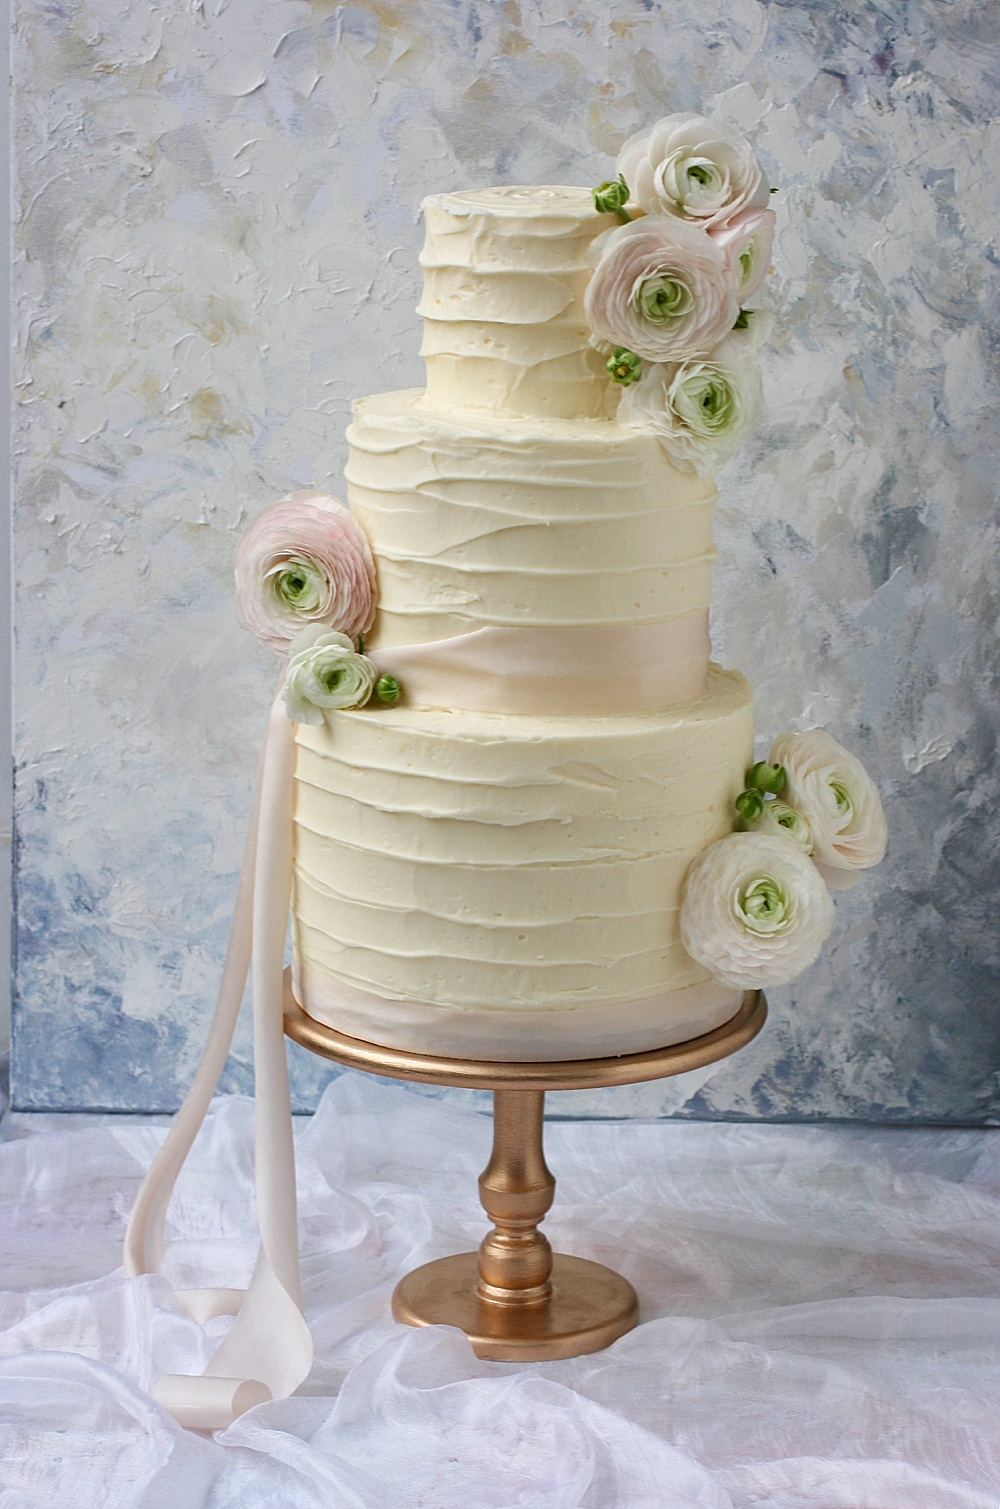 best wedding cakes uk iced wedding cakes from top uk wedding cake makers rmw the 11692